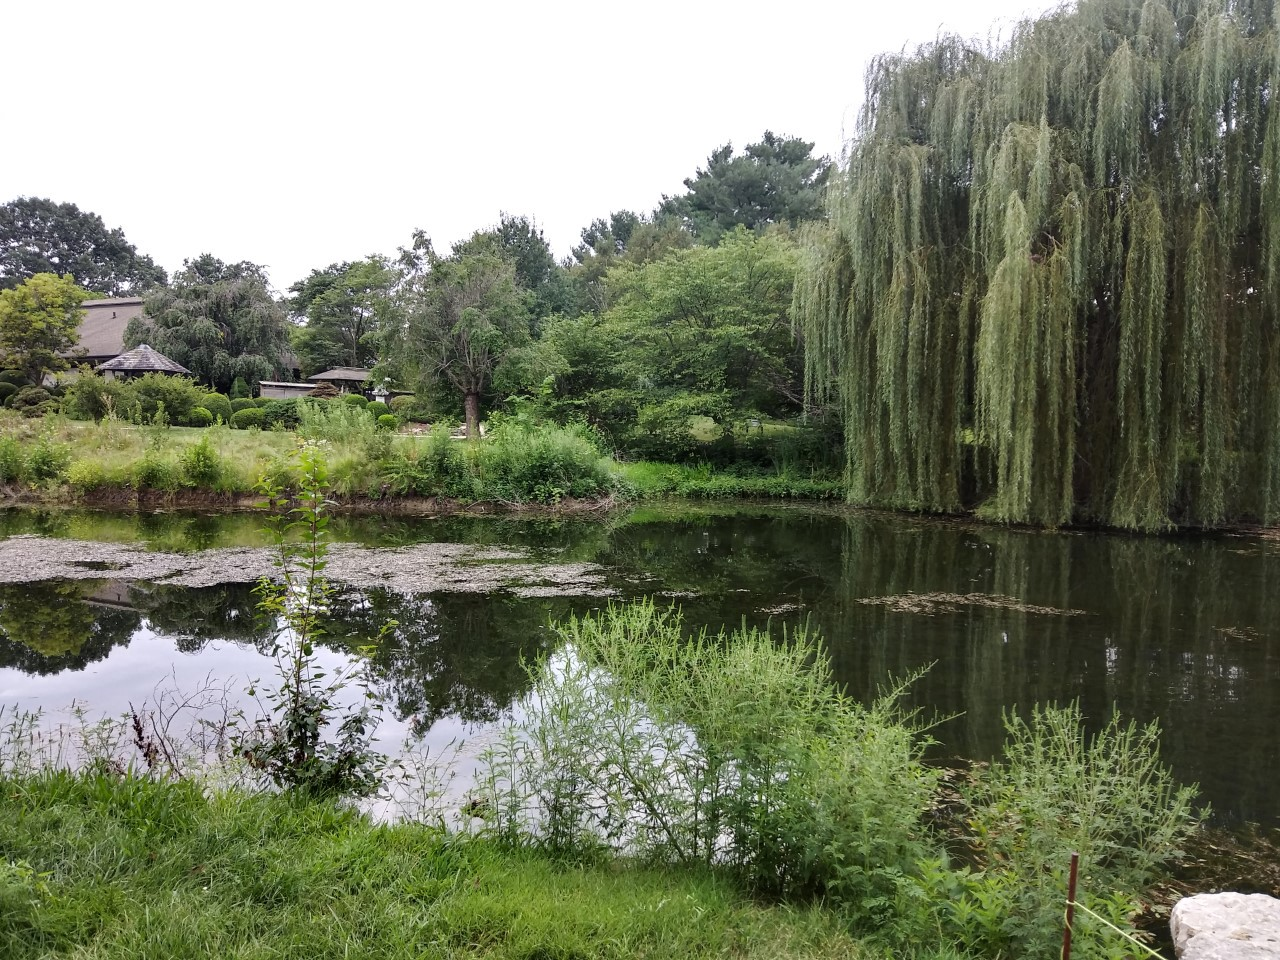 A pond surrounded by several trees including a weeping willow in a Japanese garden with Japanese-style house in background.